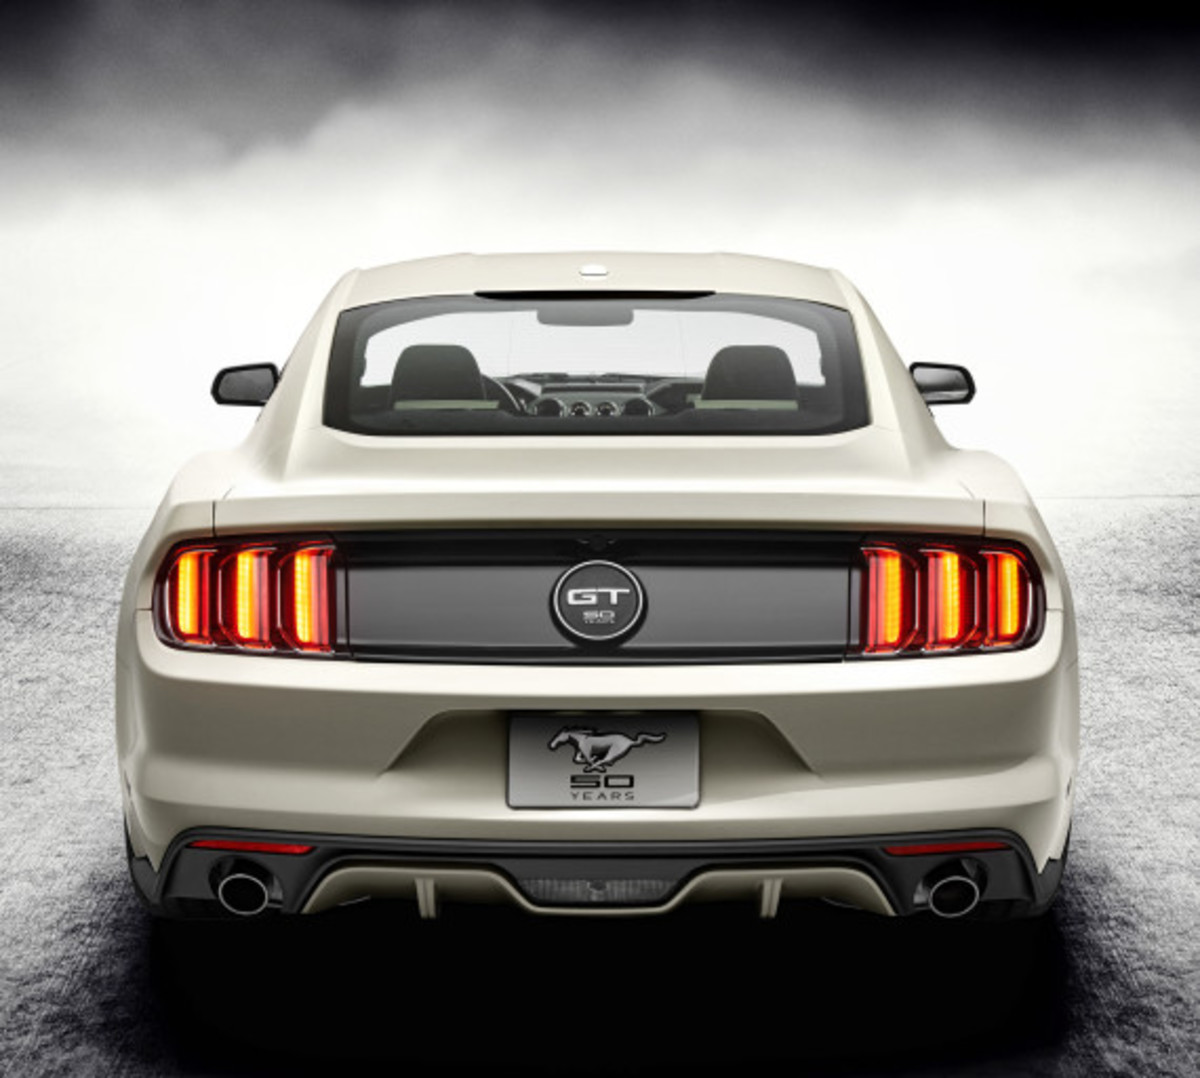 Ford Mustang - 50th Anniversary Edition - 3